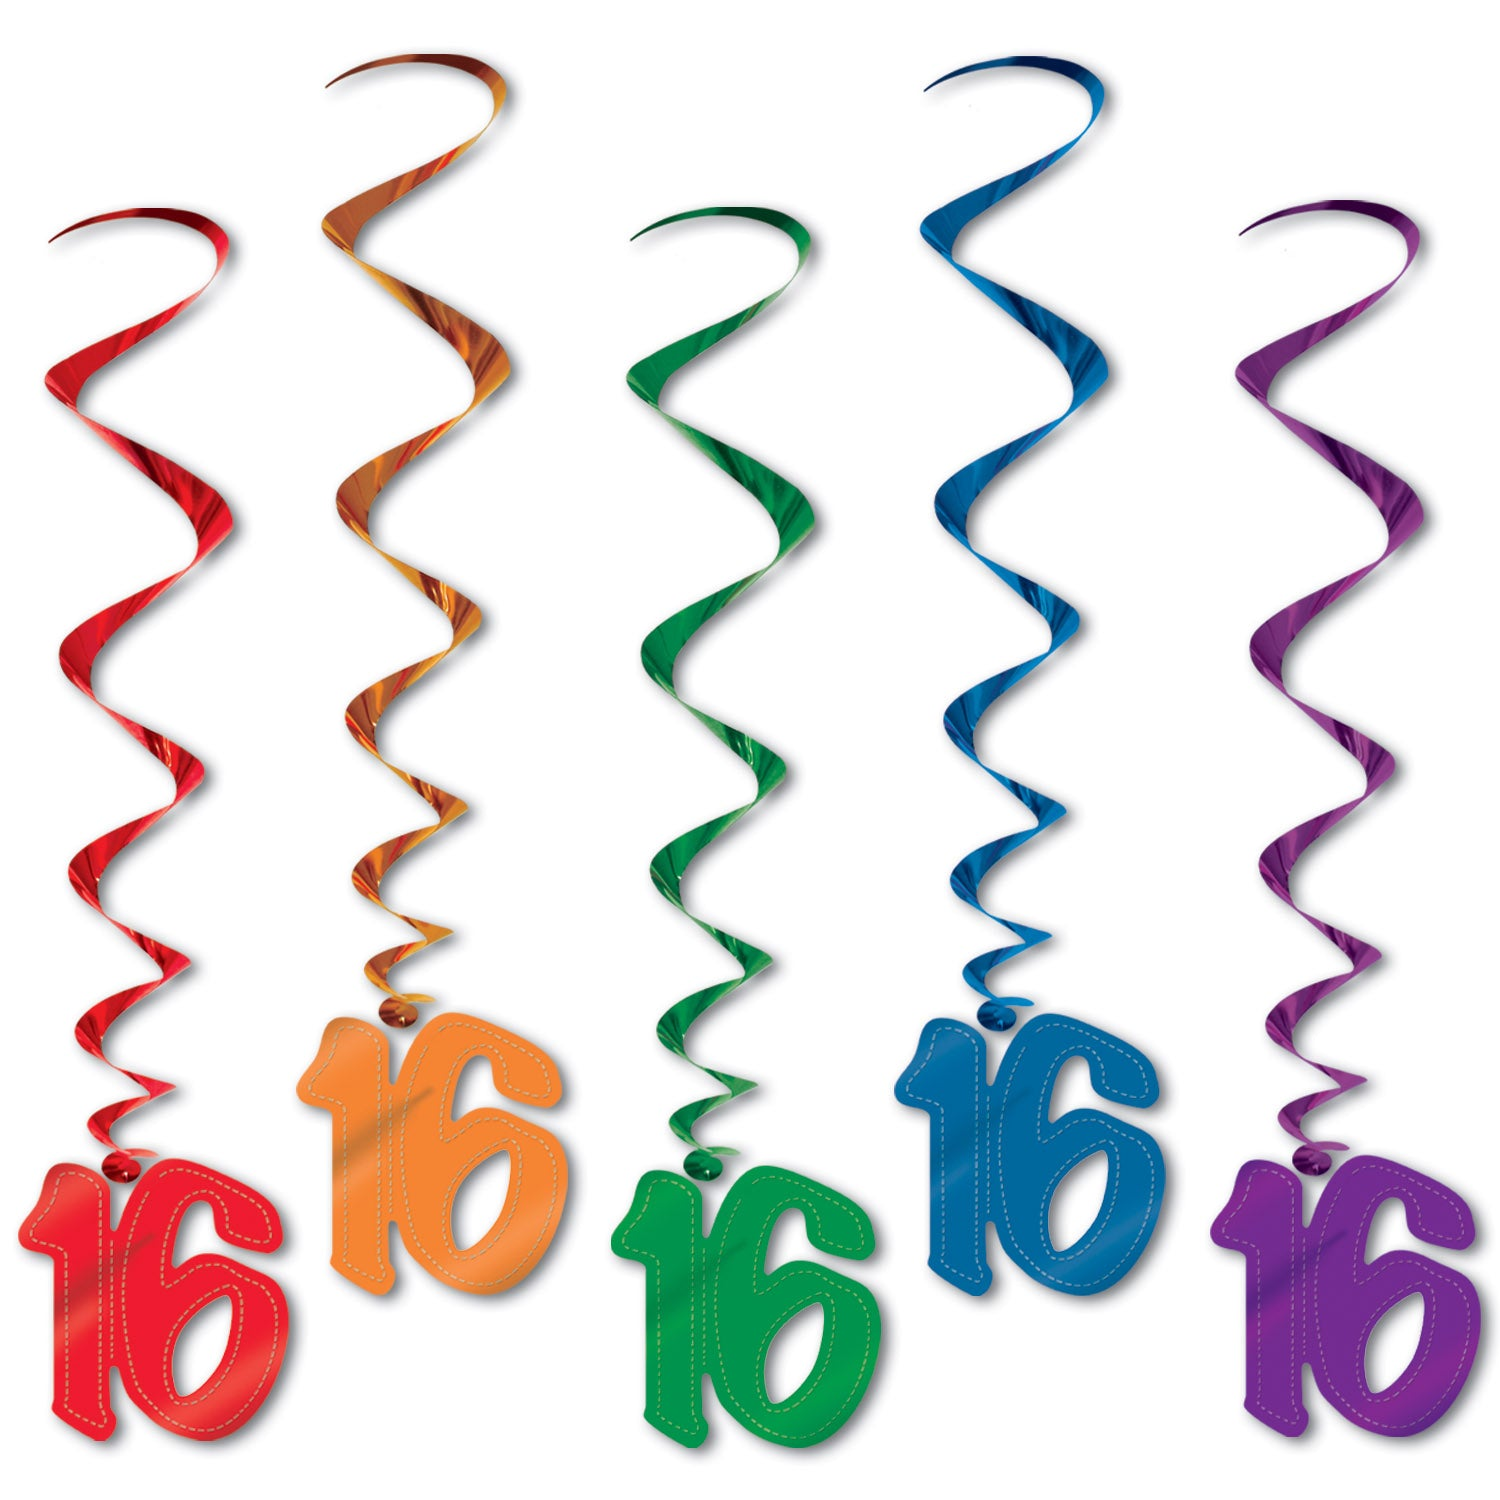 16 Whirls (5/Pkg) Assorted Colors by Beistle - Sweet 16 Birthday Decorations